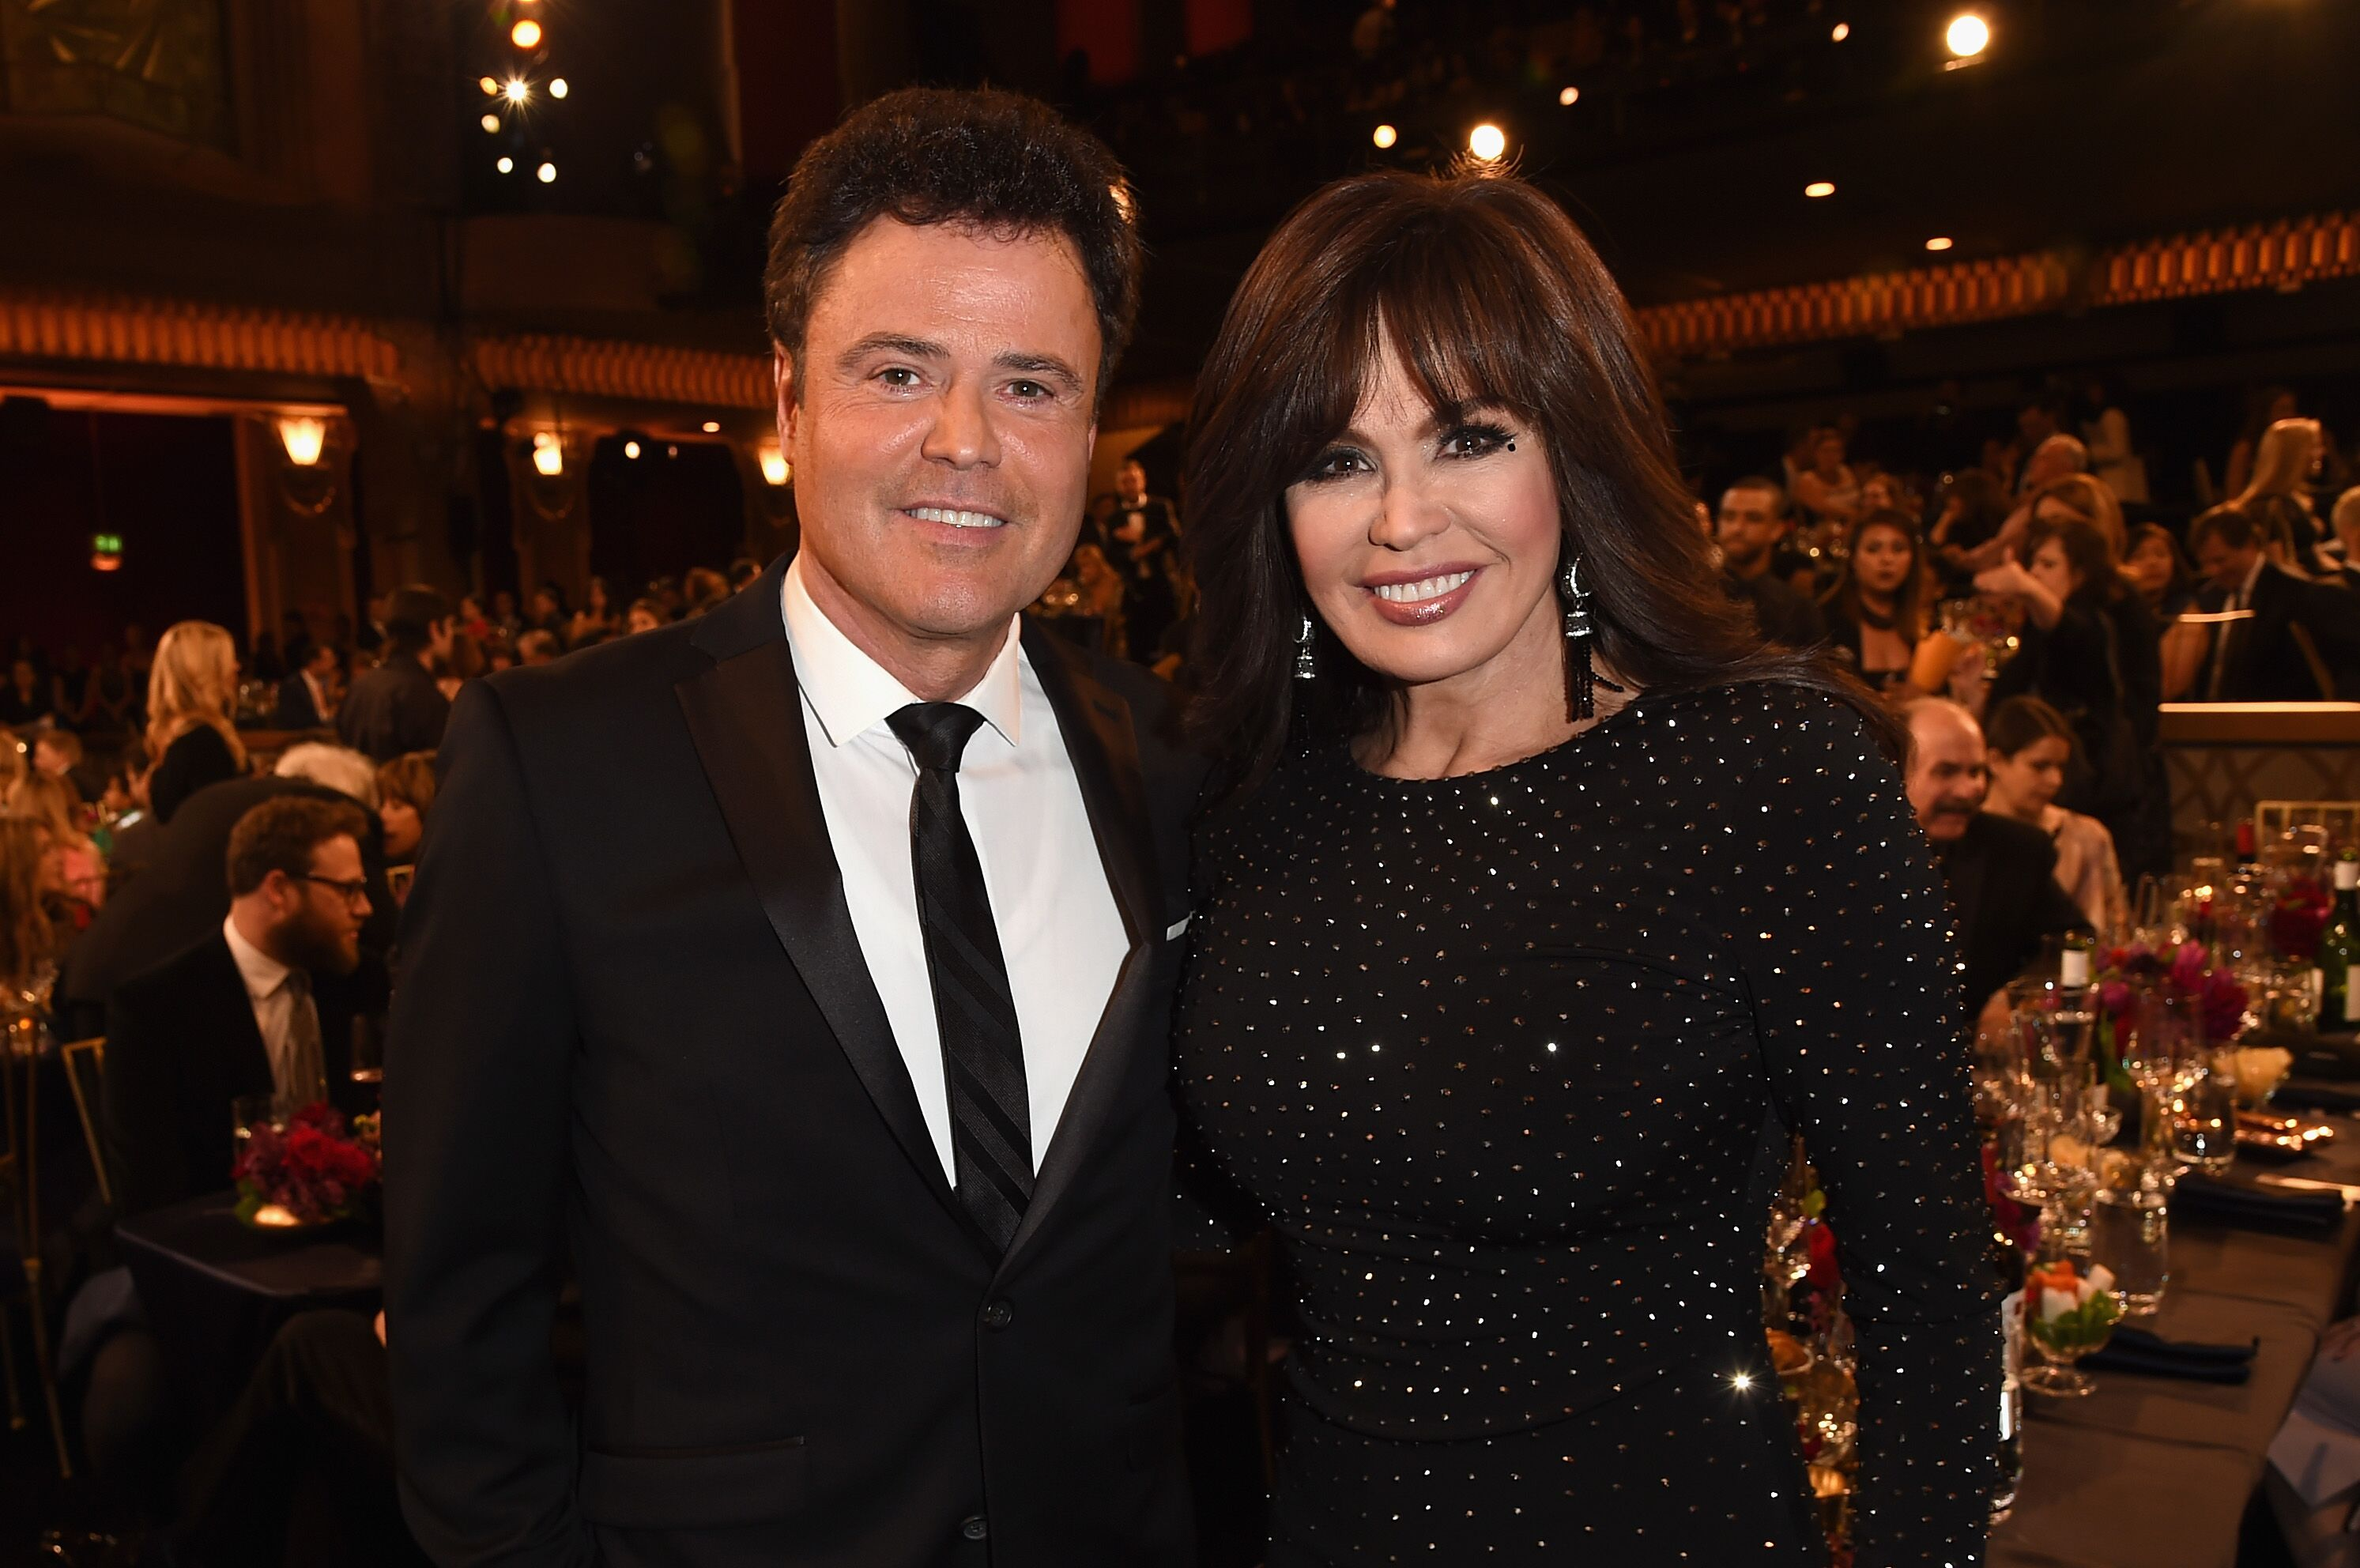 Donny and Marie Osmond at the 2015 TV Land Awards at Saban Theatre on April 11, 2015 in Beverly Hills, California | Photo: Jason Merritt/Getty Images